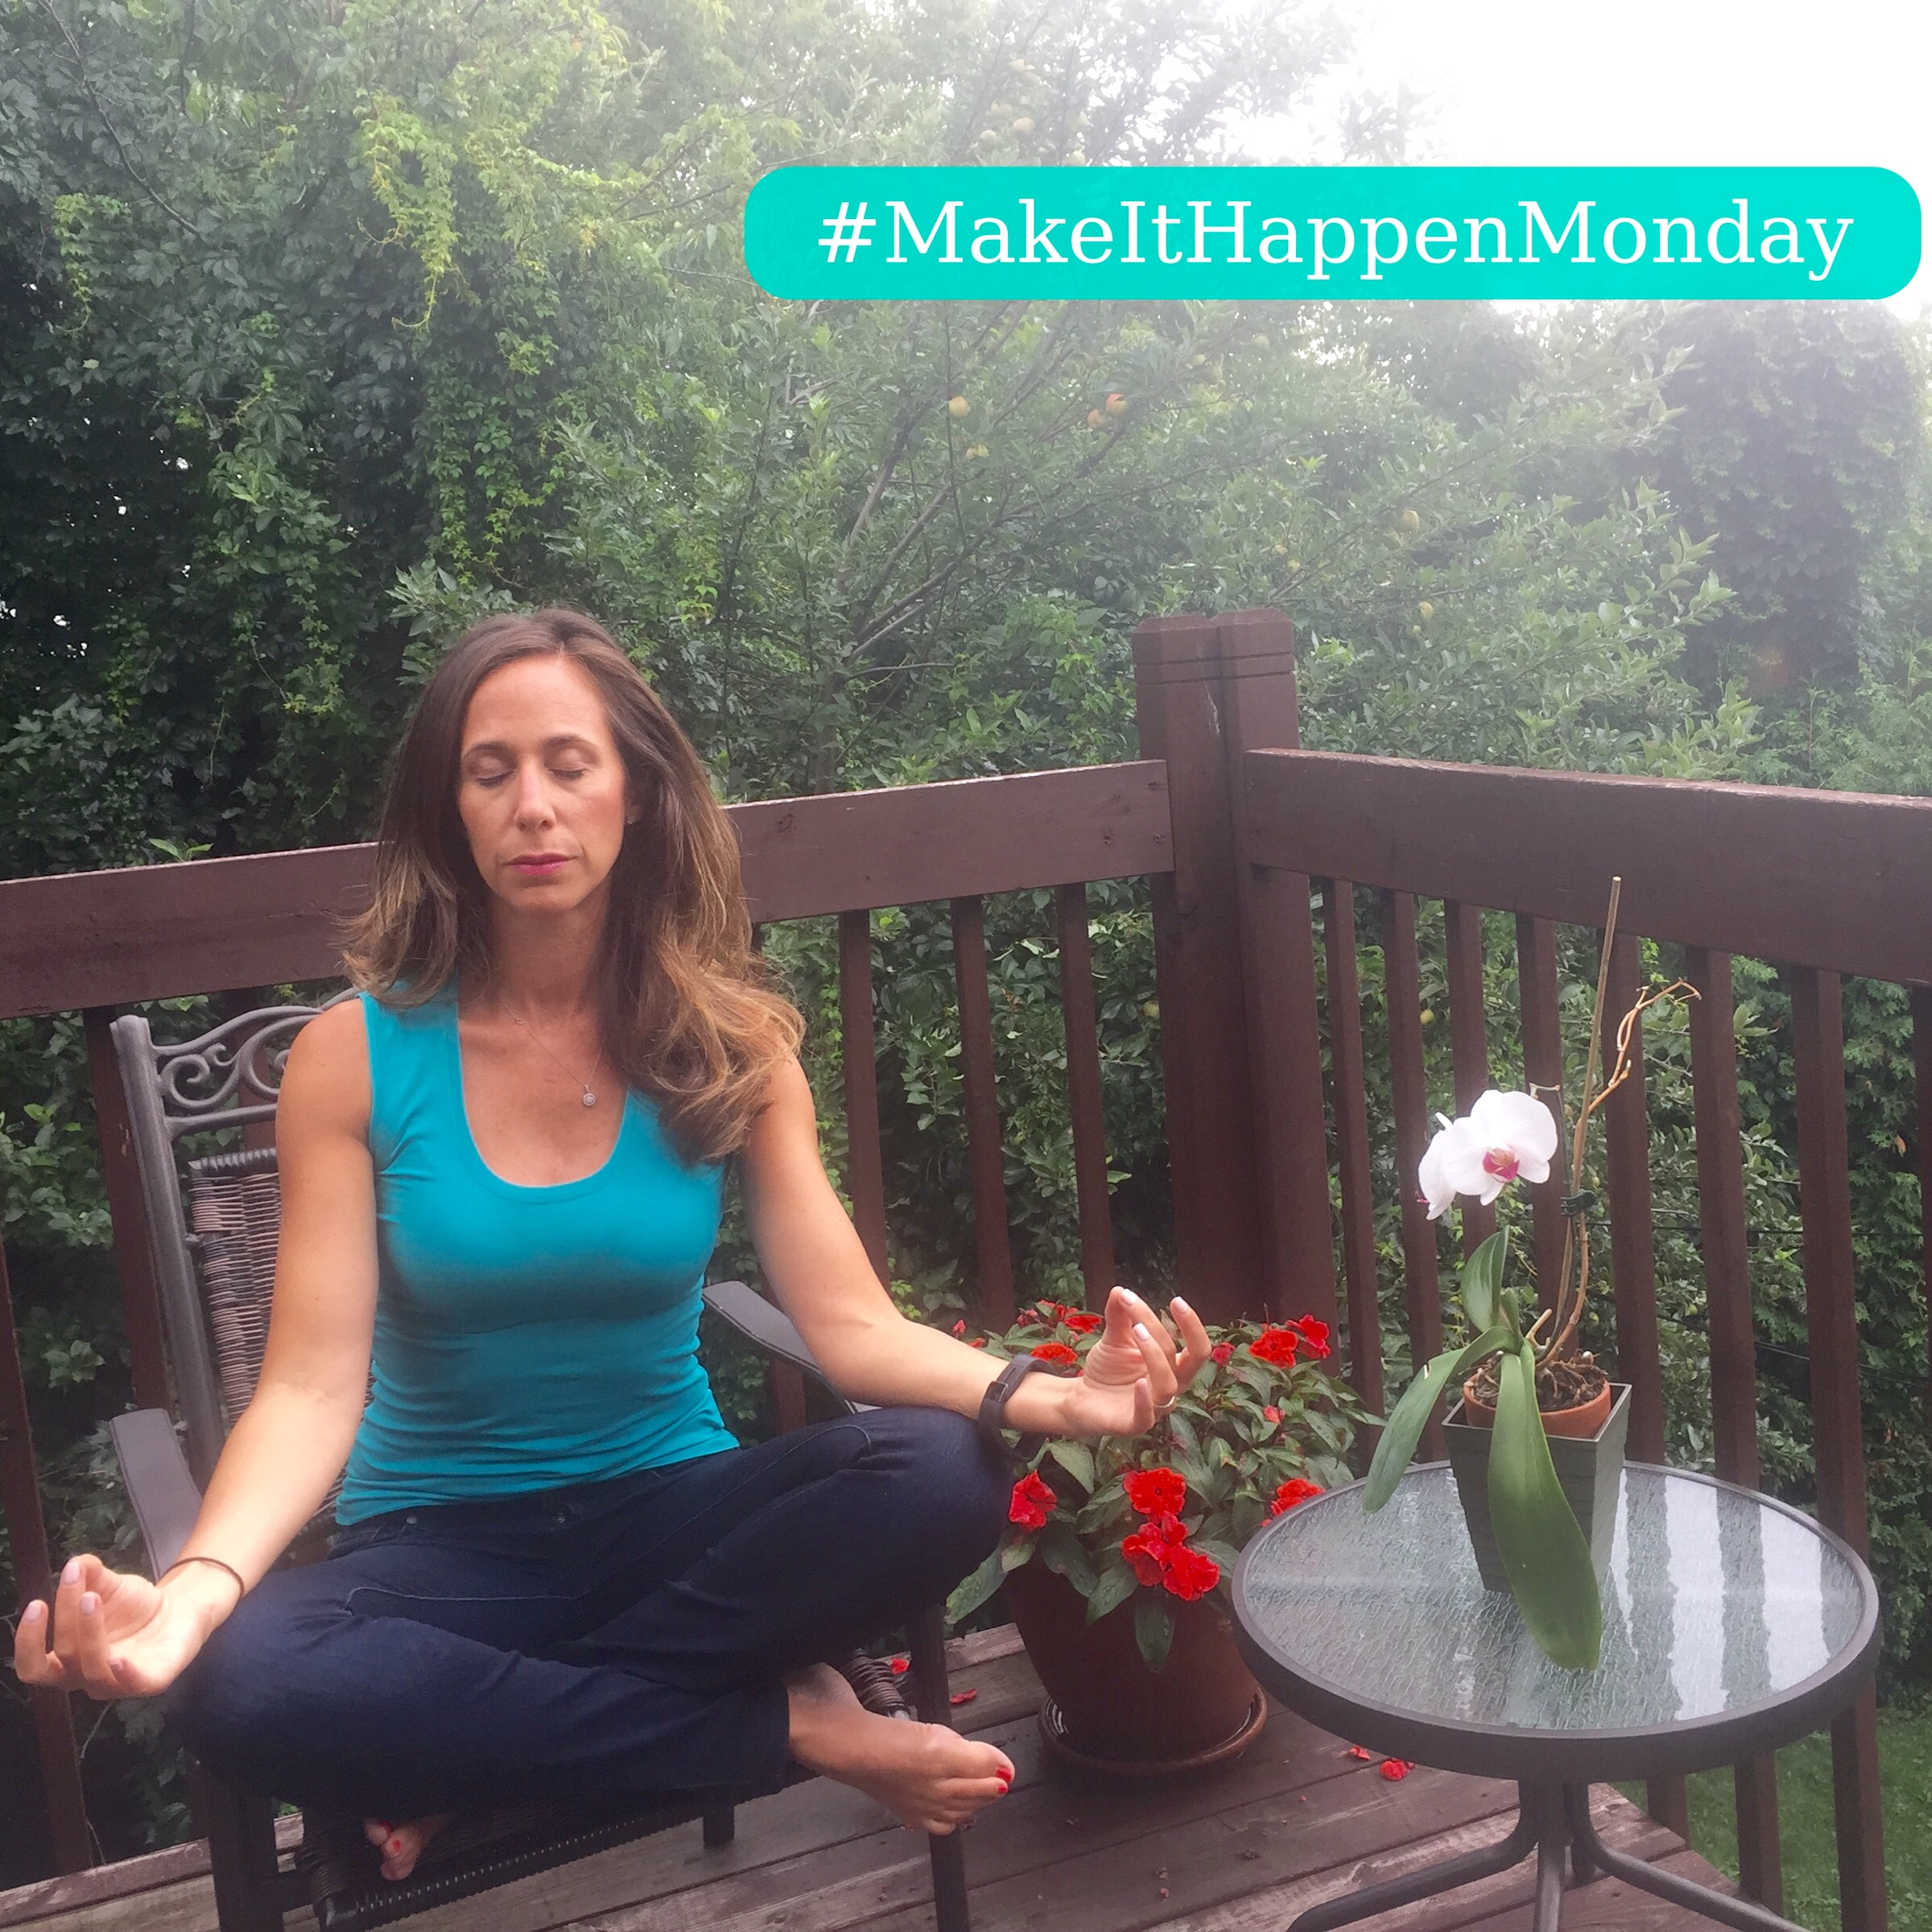 On A Journey To #MakeItHappenMonday